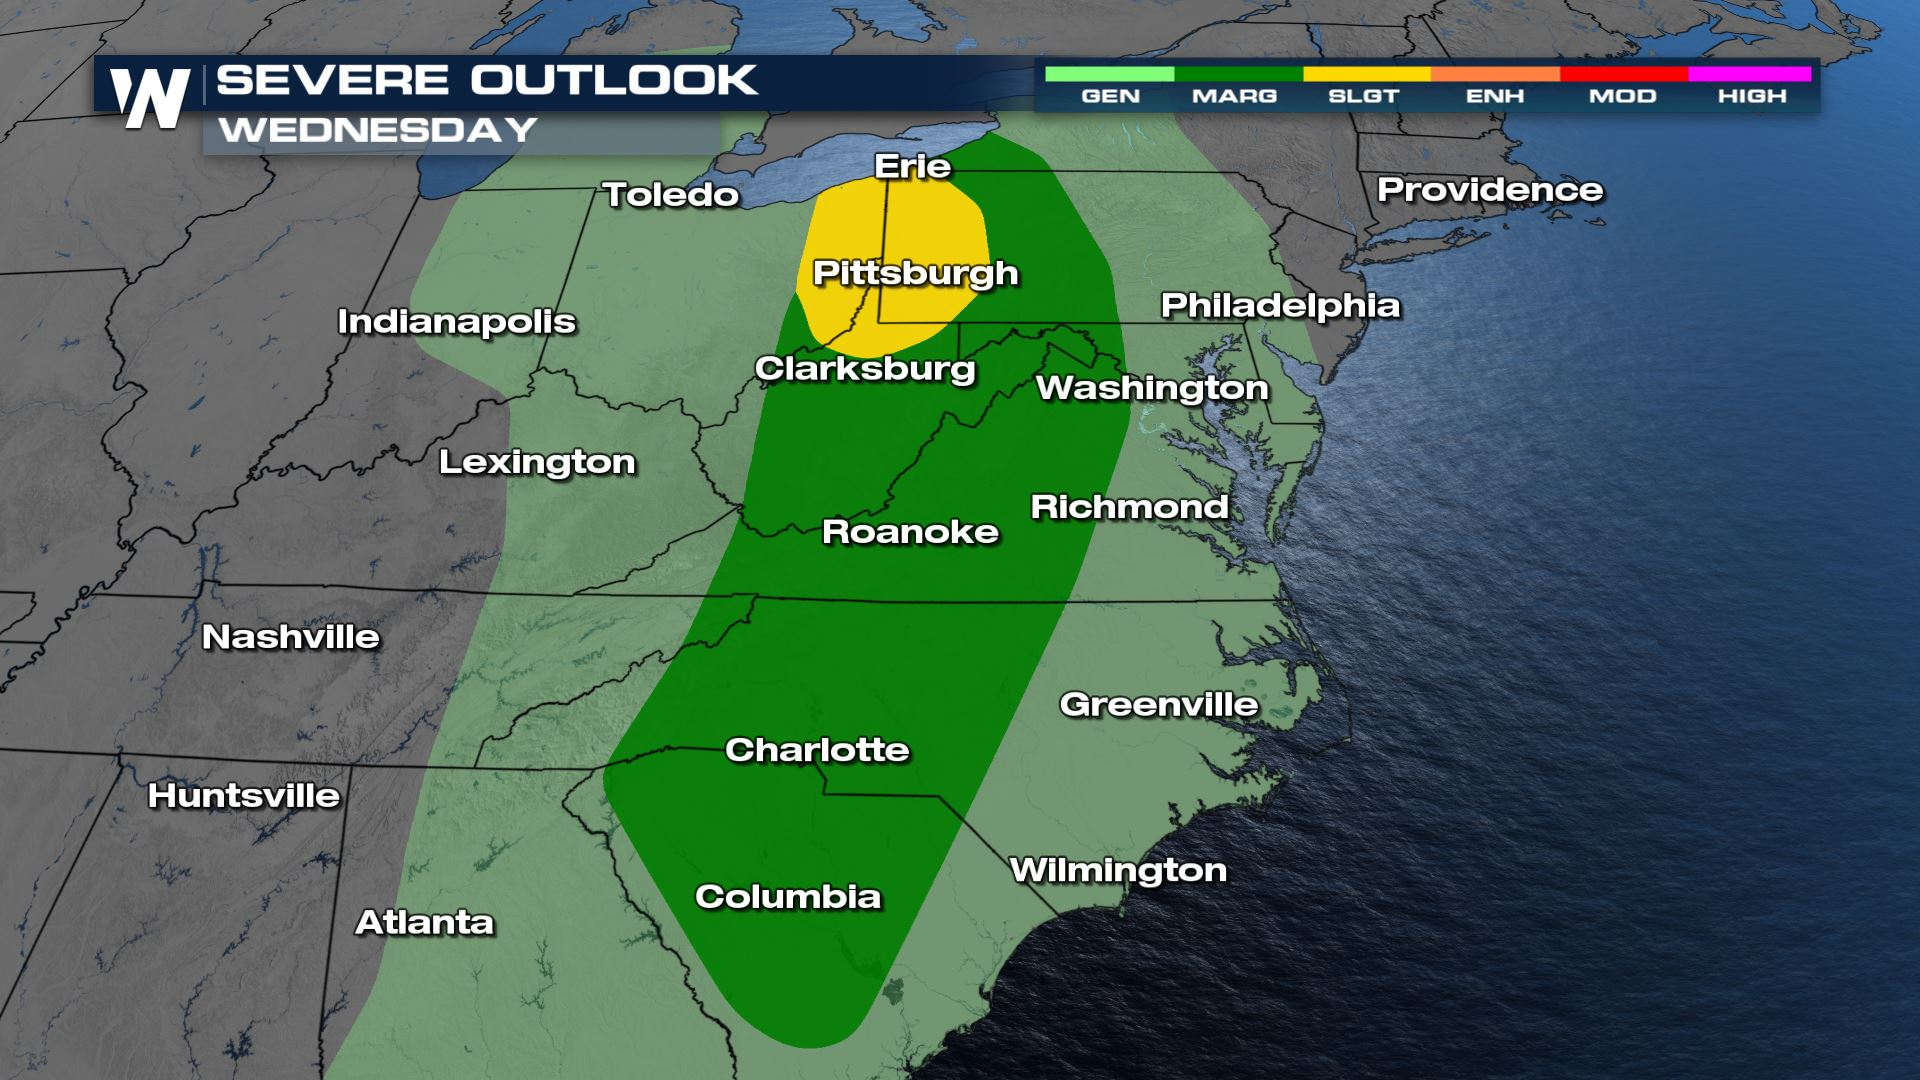 Severe Risk Increases Wednesday for the Ohio Valley